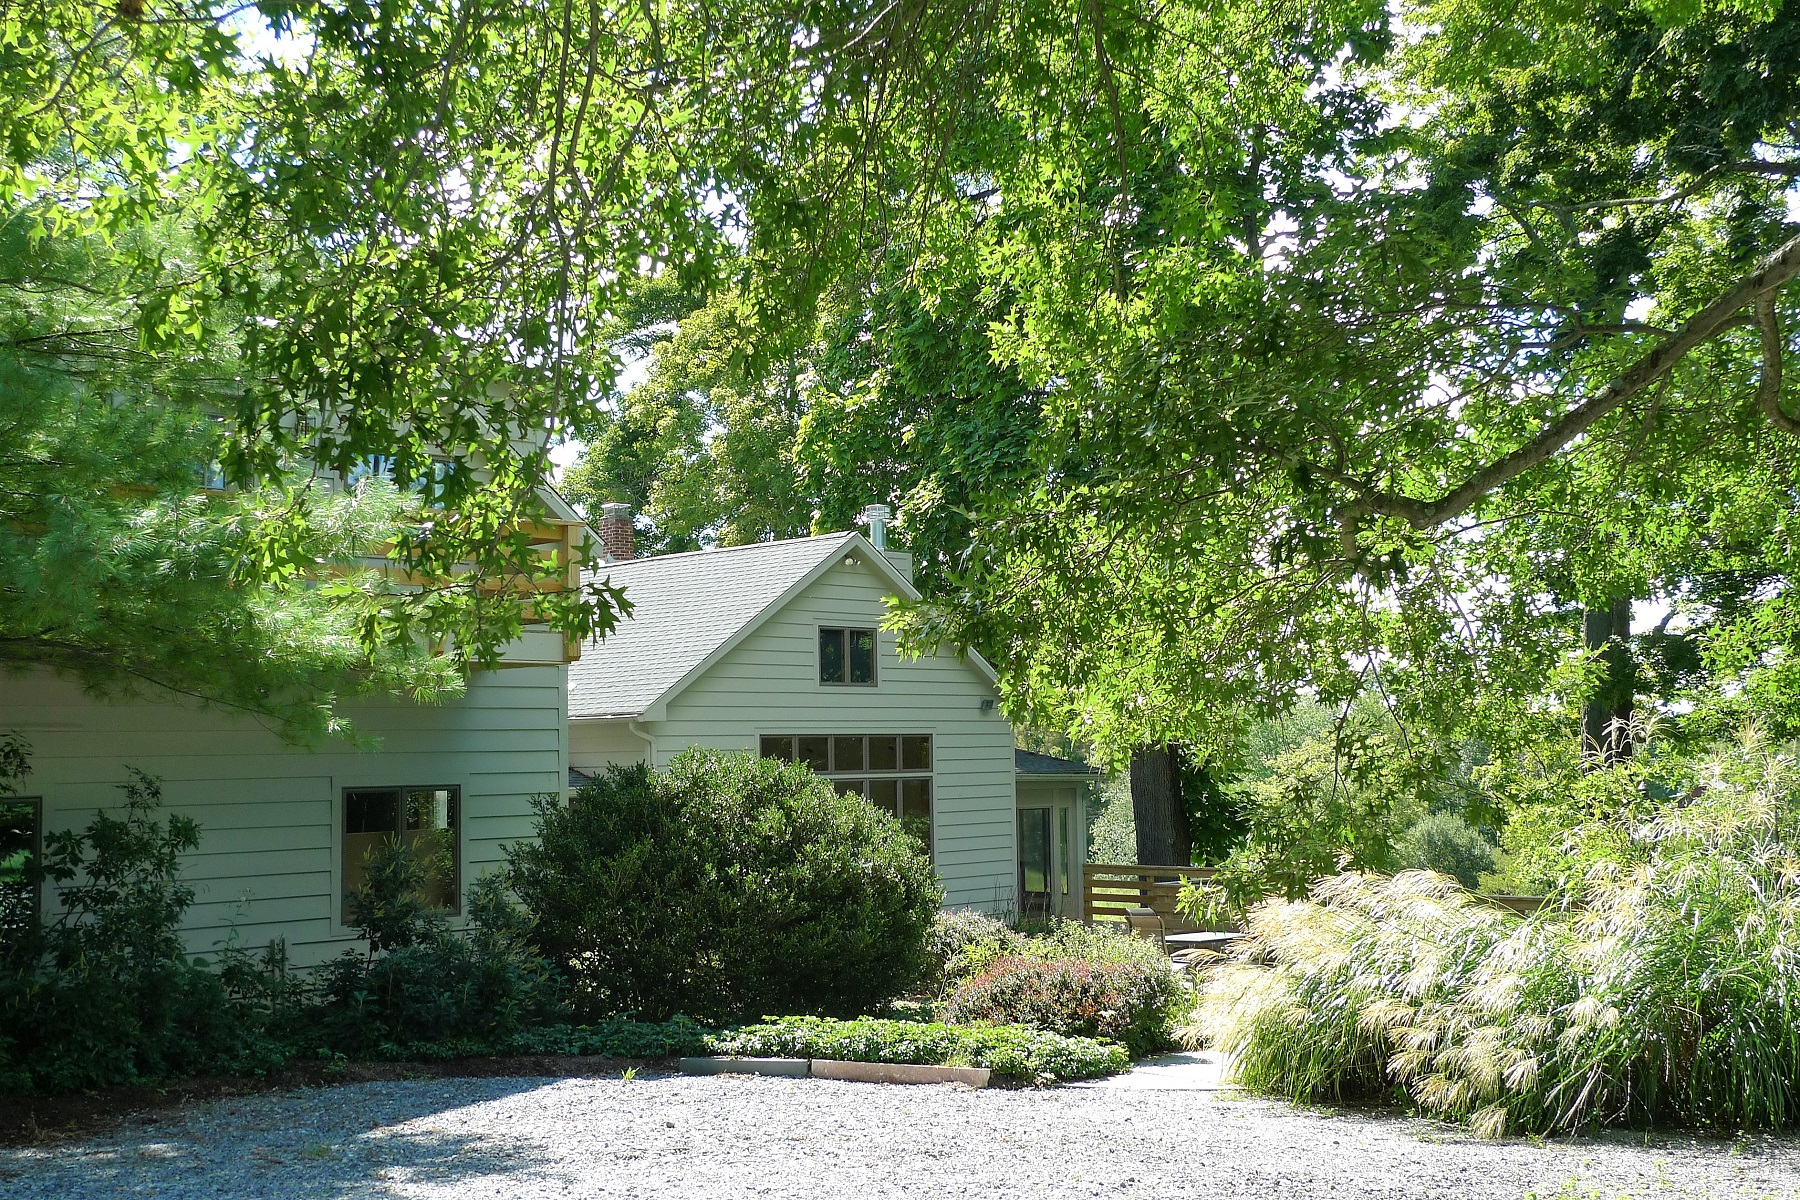 Single Family Home for Sale at Browning Road Farmhouse 11 Browning Road Hyde Park, New York 12538 United States